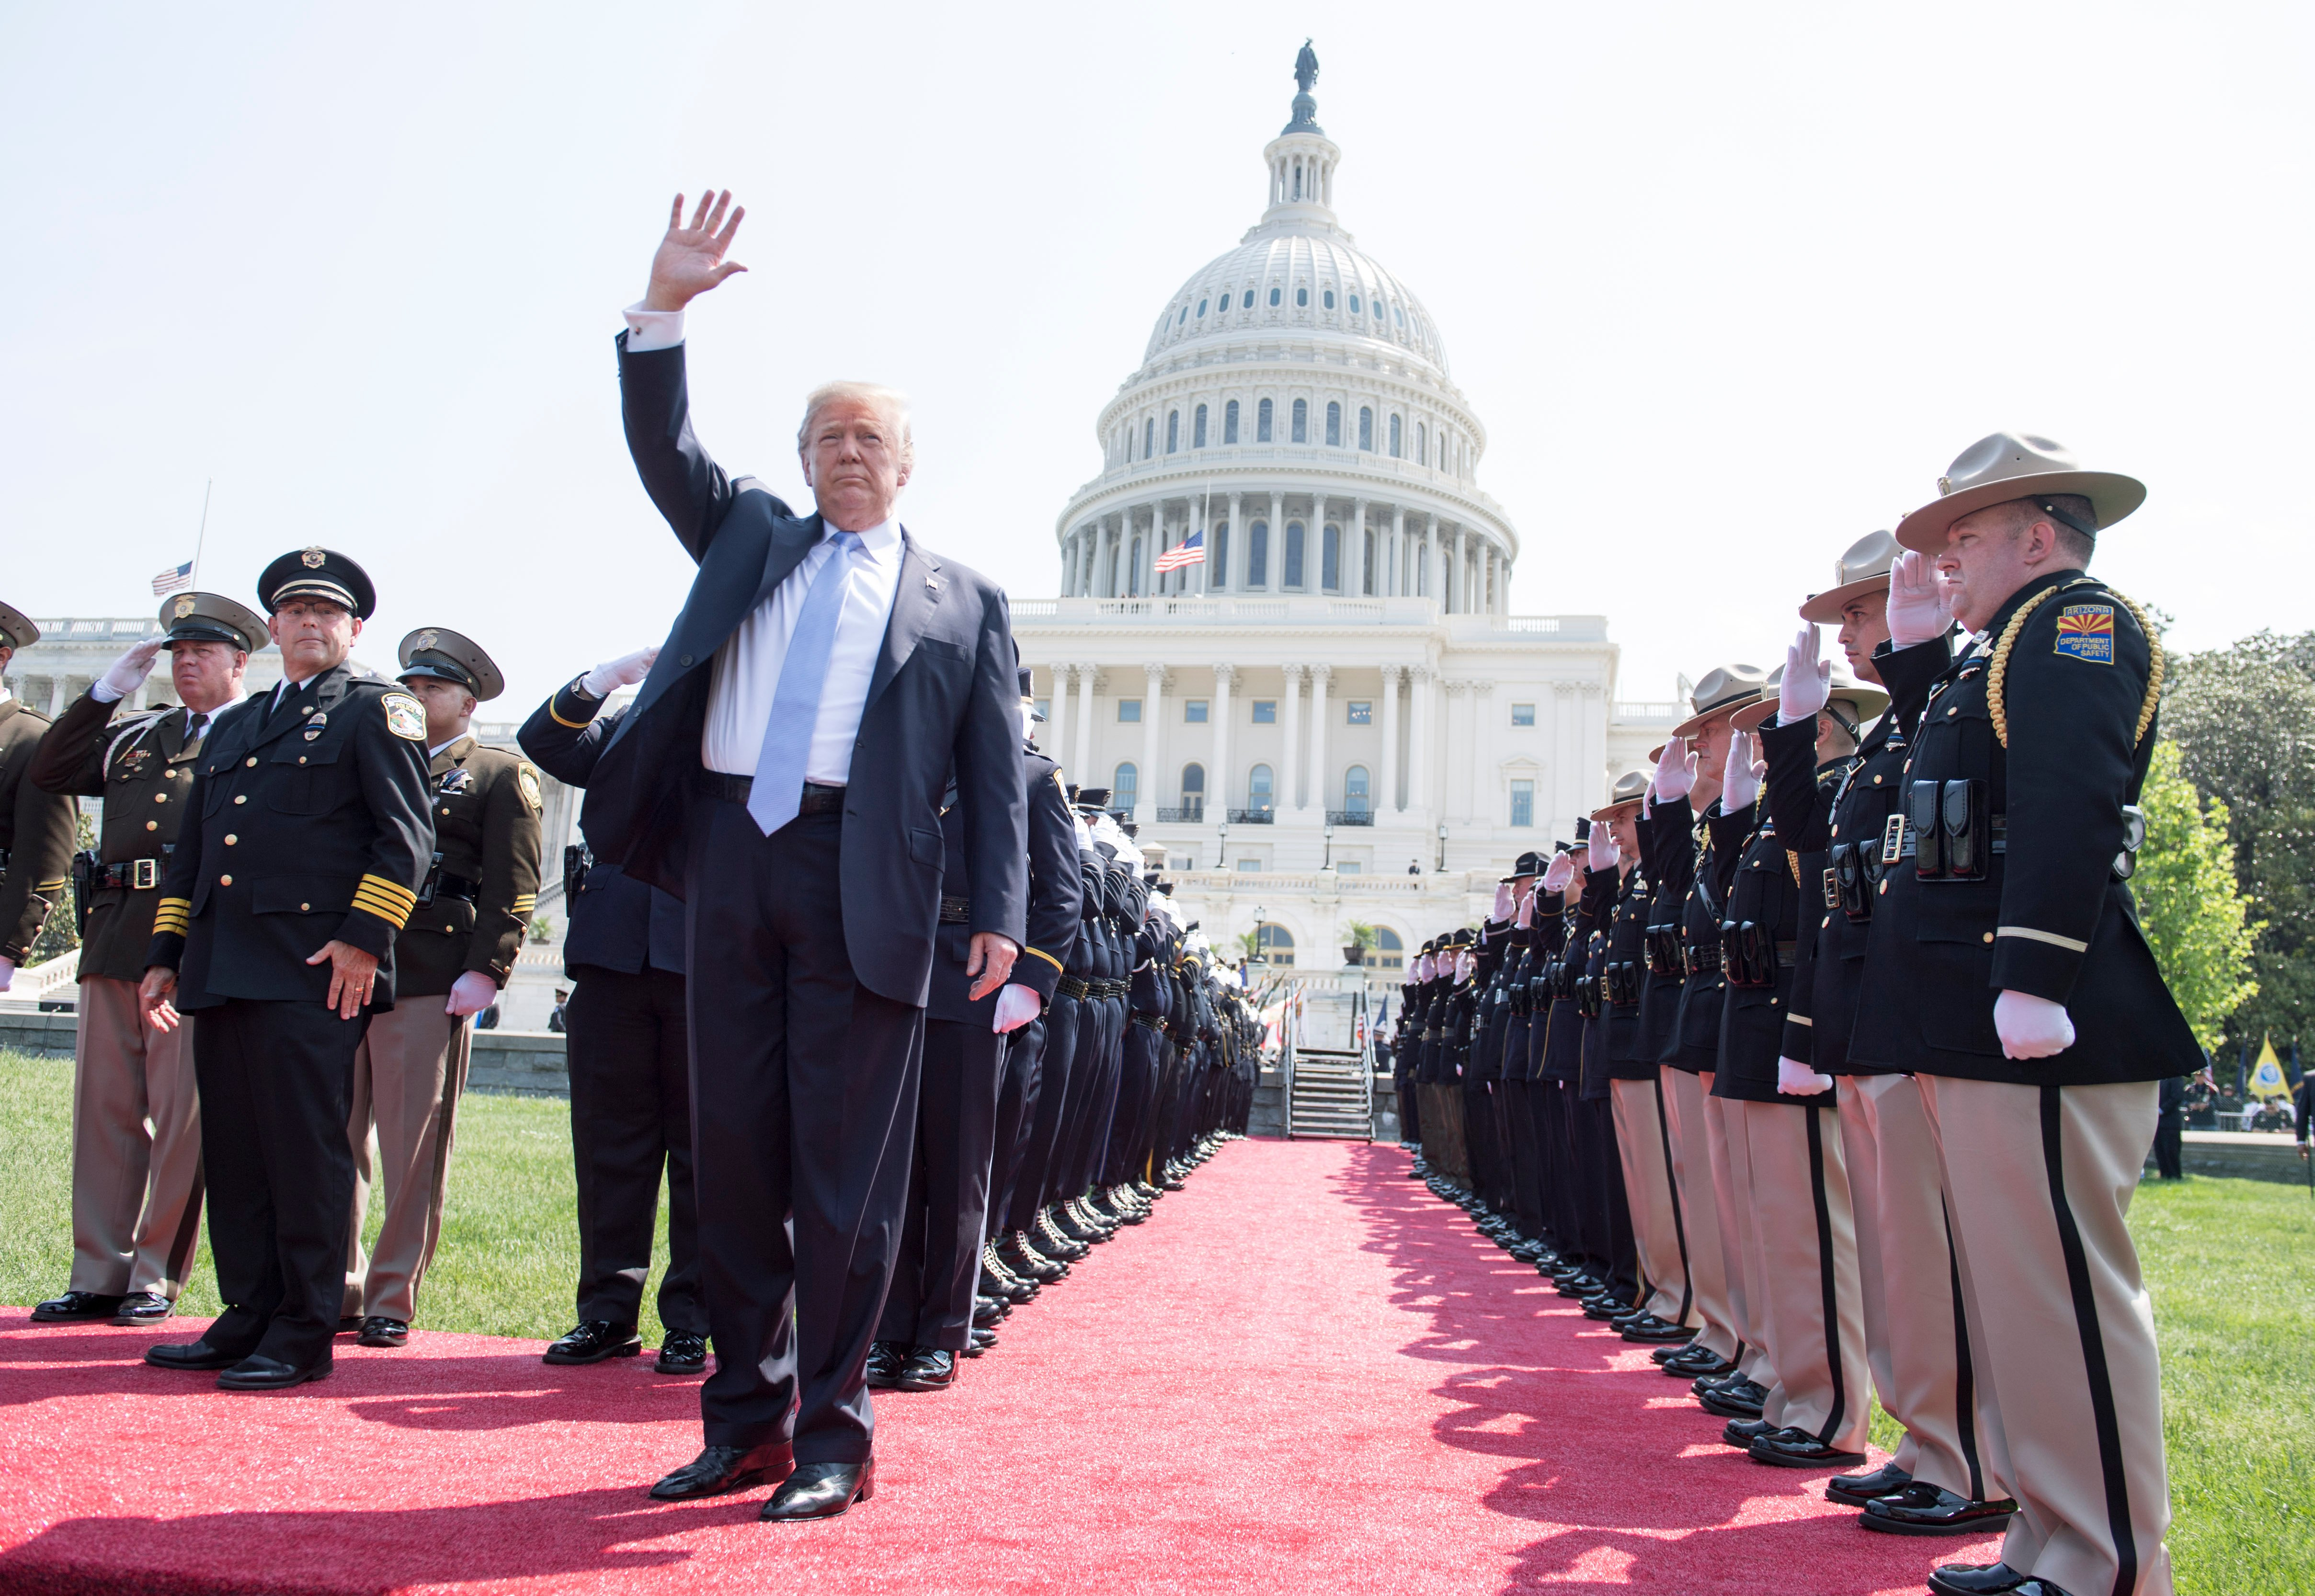 WASHINGTON, DC - MAY 15: US President Donald Trump waves as he arrives at the 37th Annual National Peace Officers' Memorial Service at the U.S. Capitol Building on May 15, 2018 in Washington, D.C. (Photo by Kevin Dietsch-Pool/Getty Images)